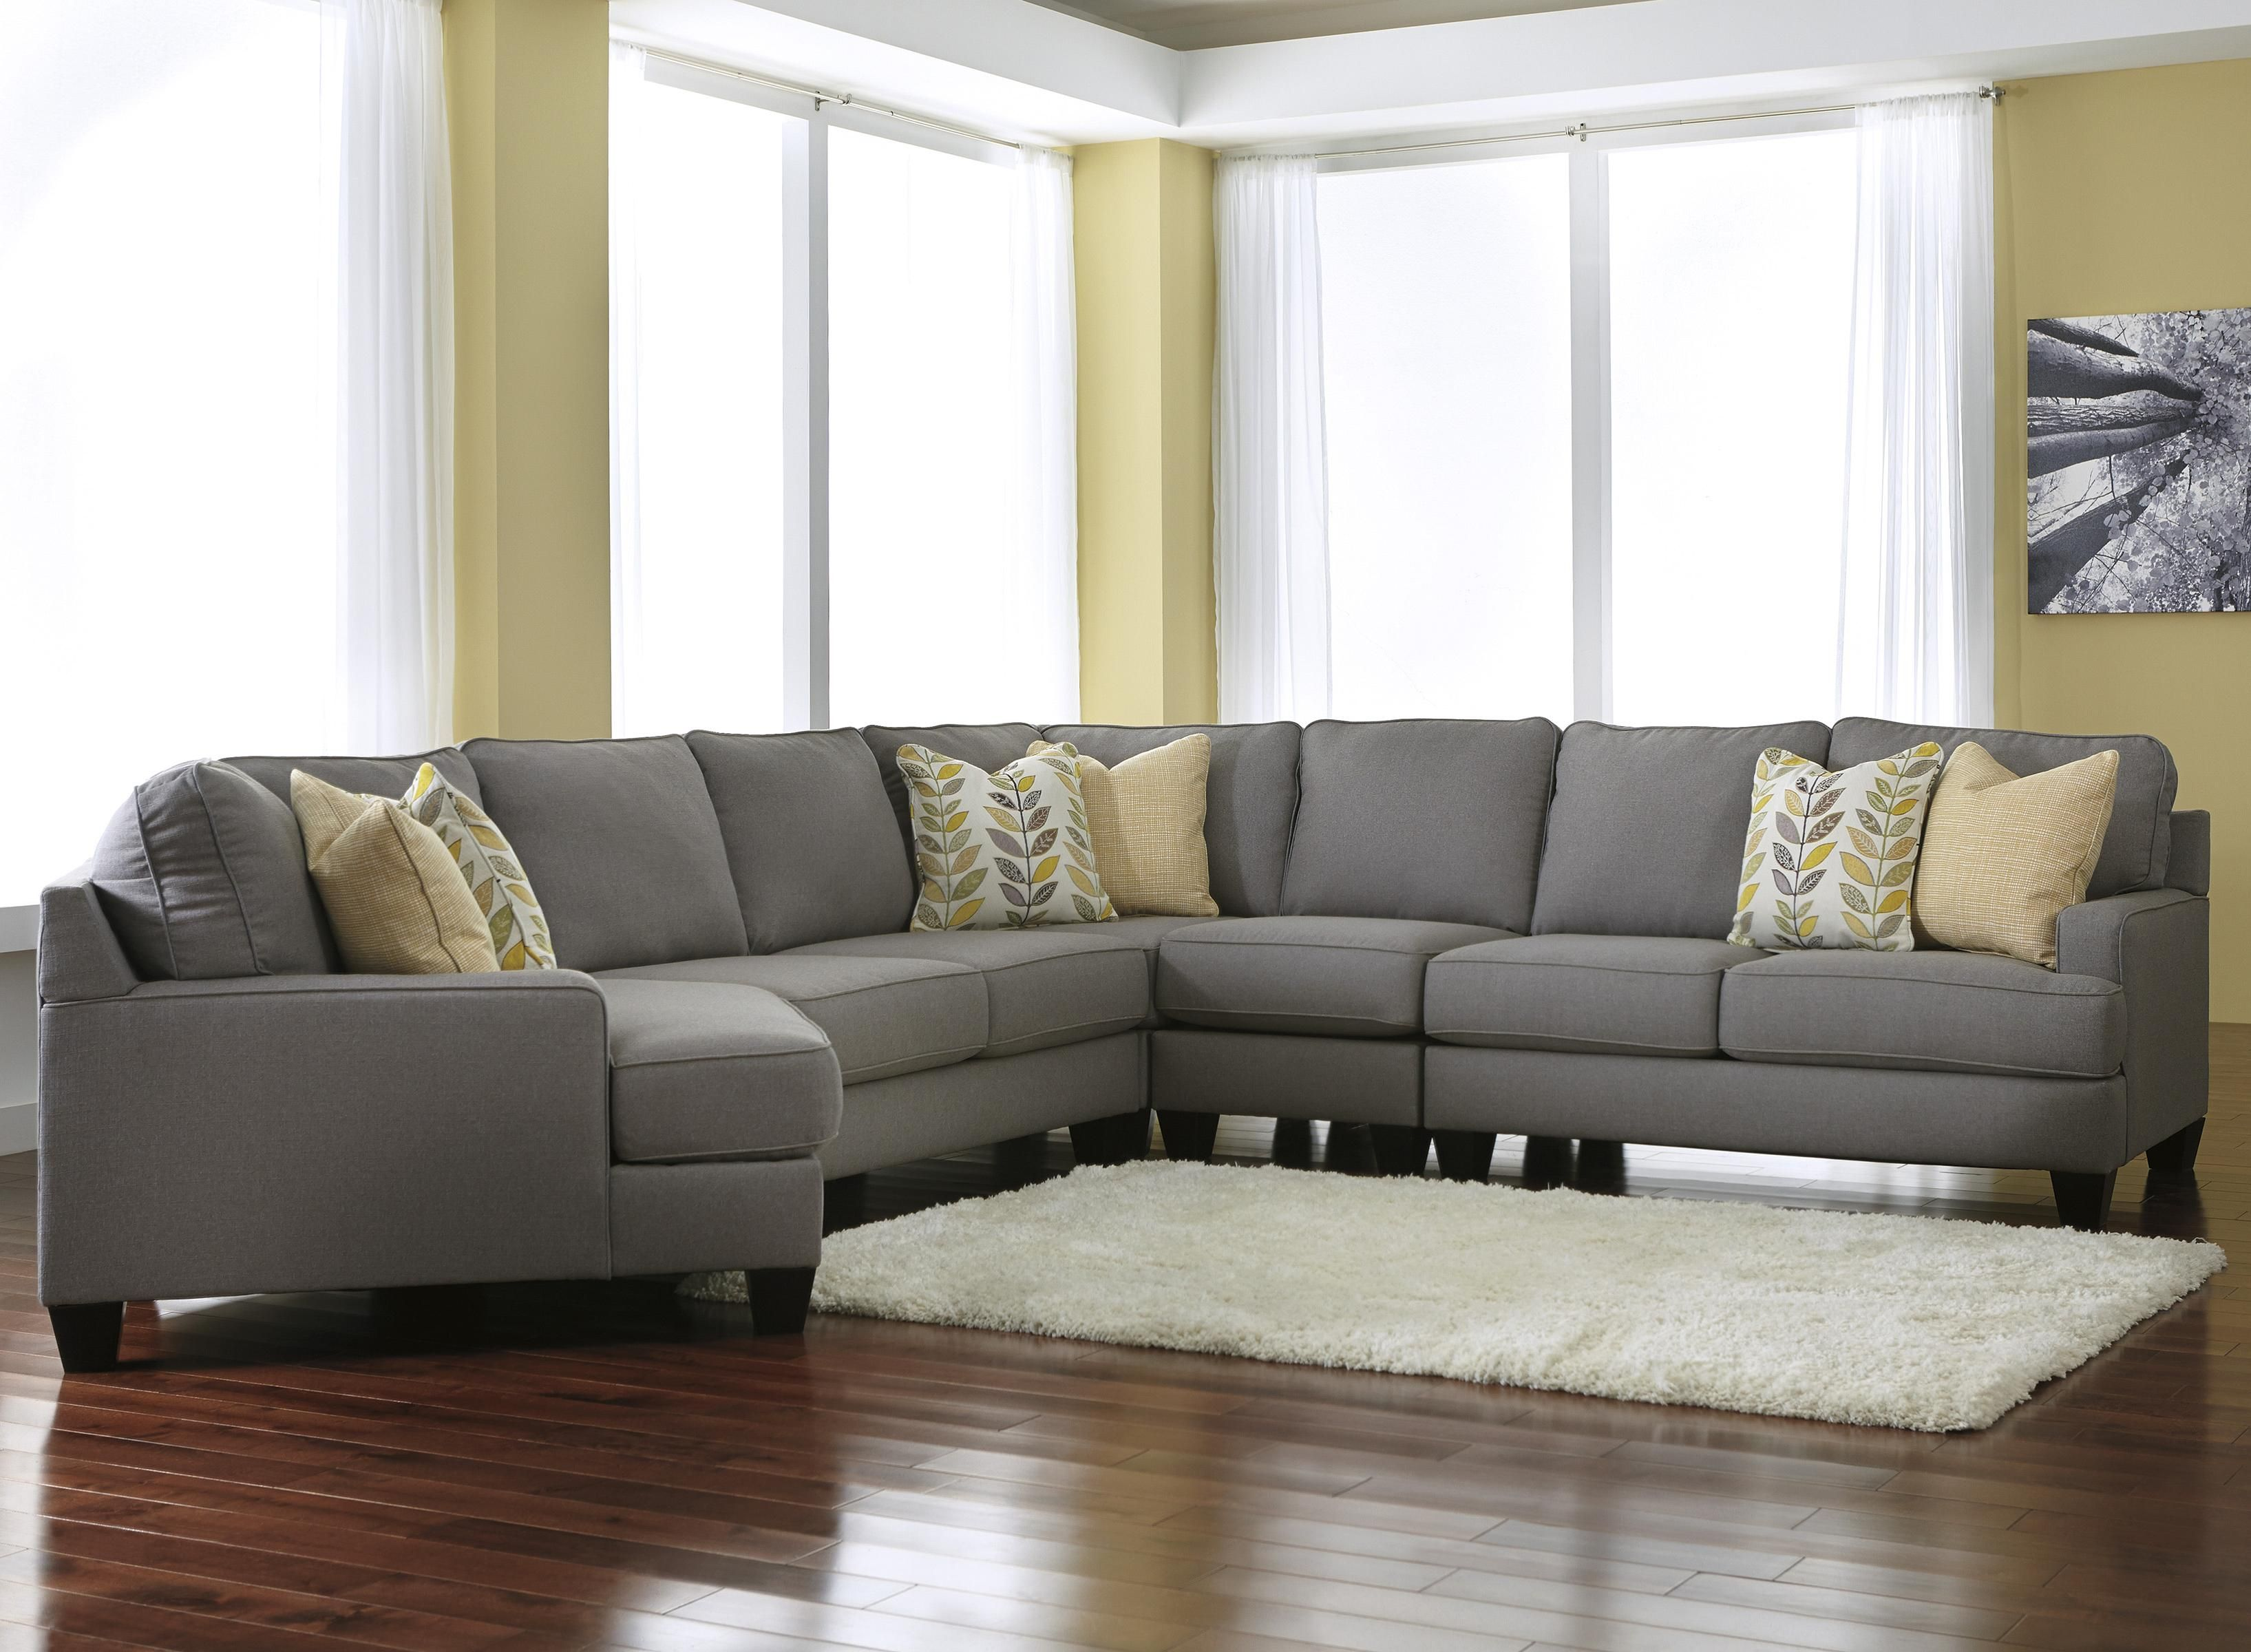 Modern 5 Piece Sectional Sofa with Left Cuddler & Reversible Seat